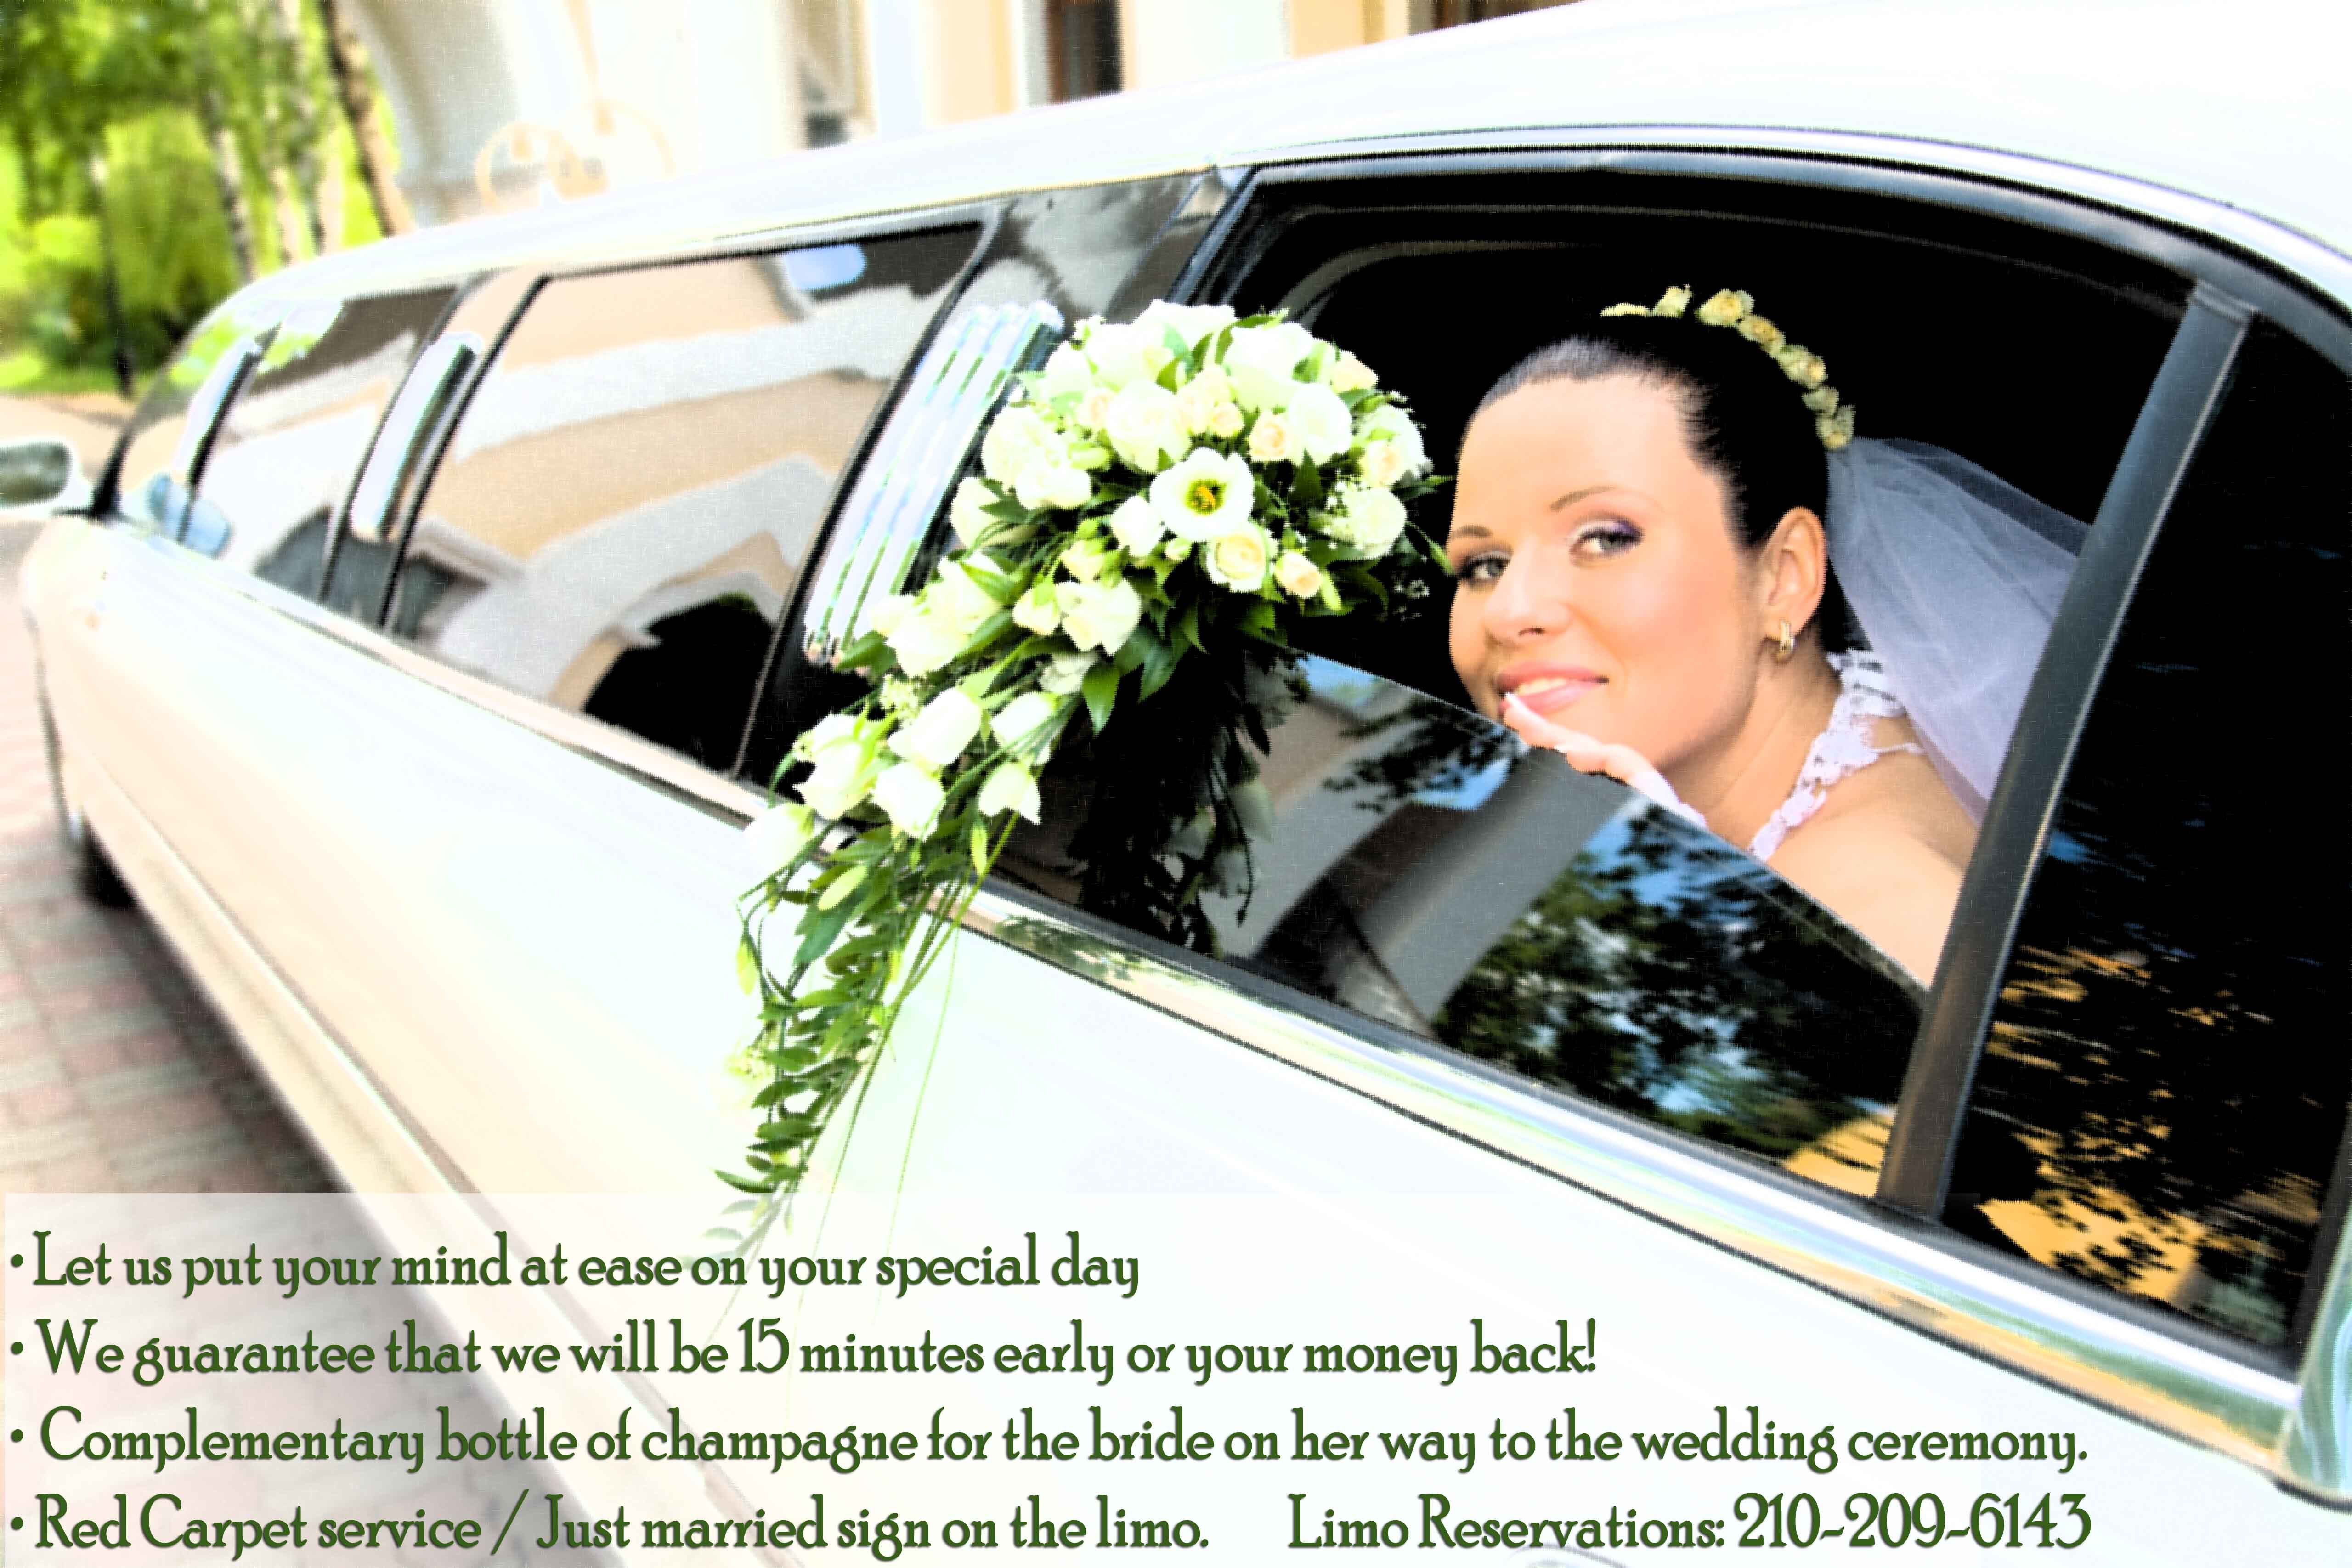 Special limousine wedding package! Let us put your mind at